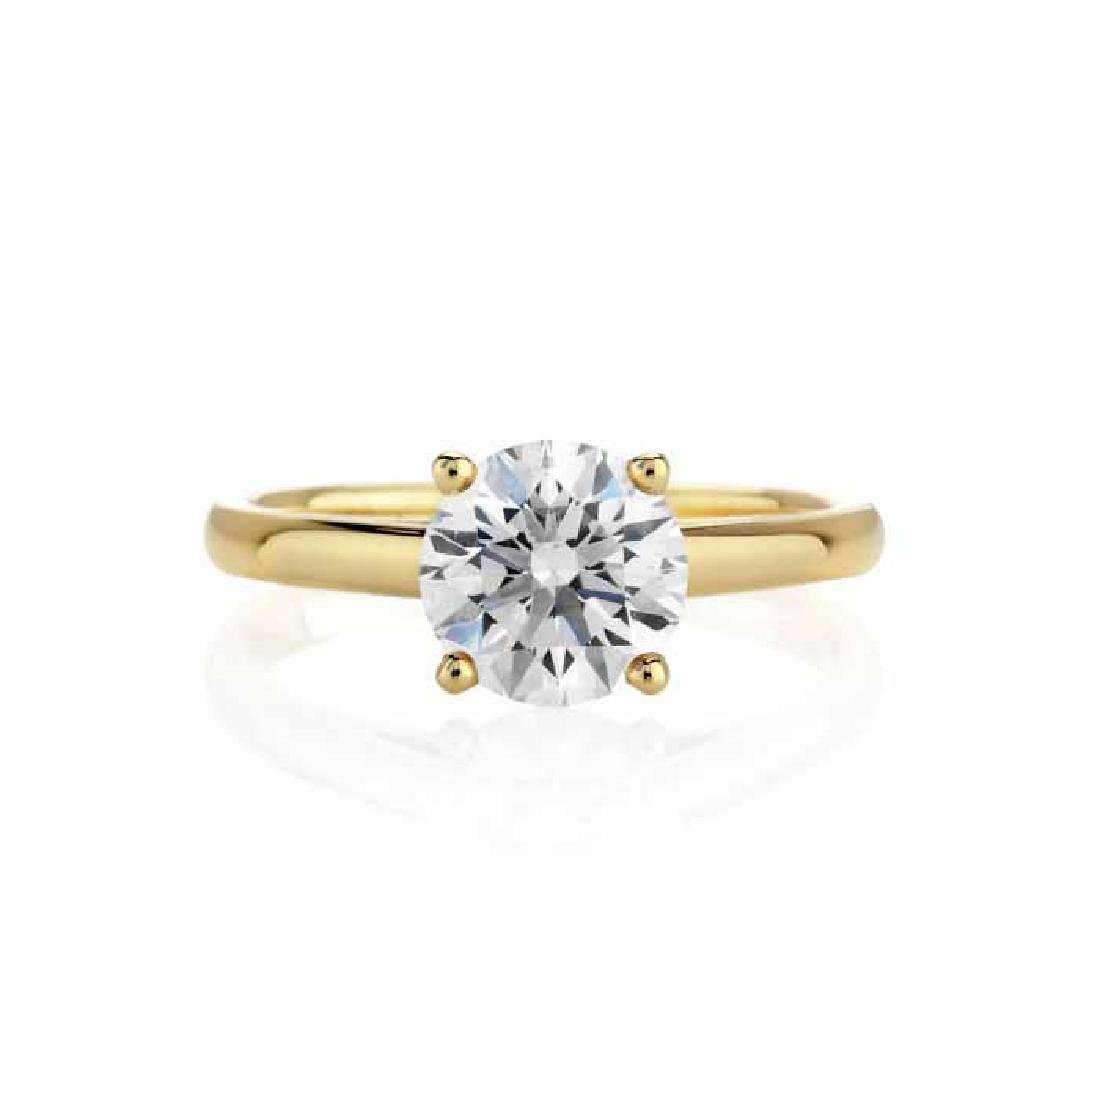 CERTIFIED 0.6 CTW J/I1 ROUND DIAMOND SOLITAIRE RING IN